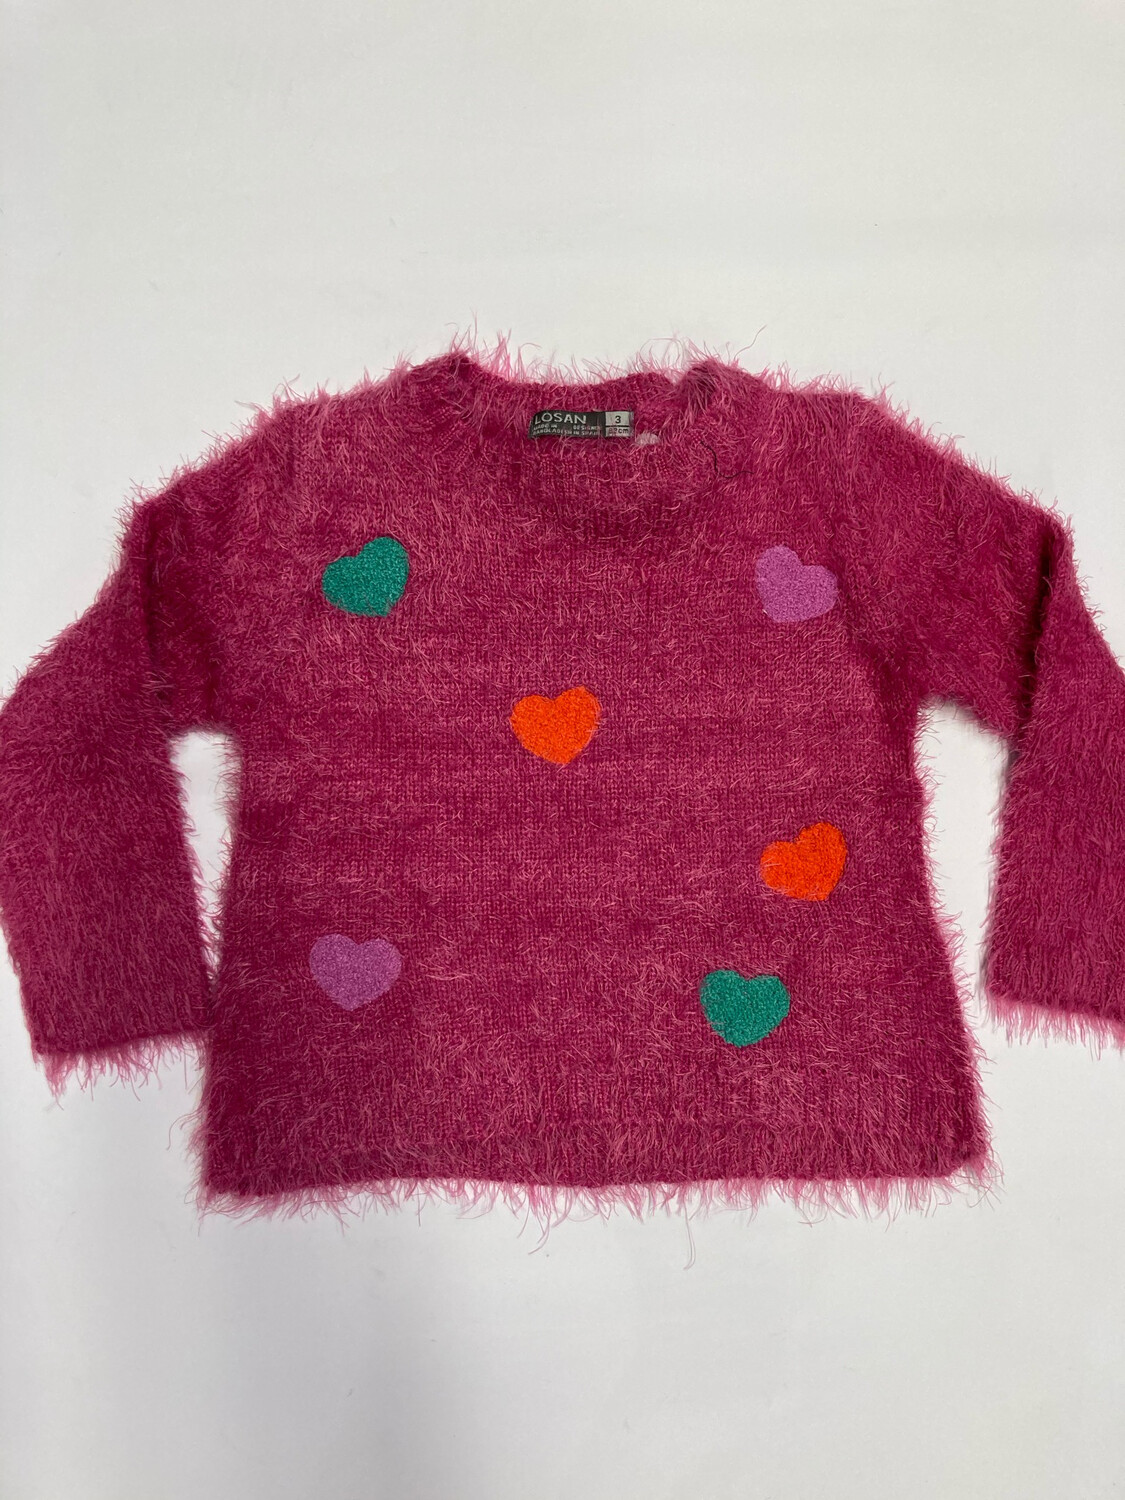 Losan Girls Pink Heart Jumper